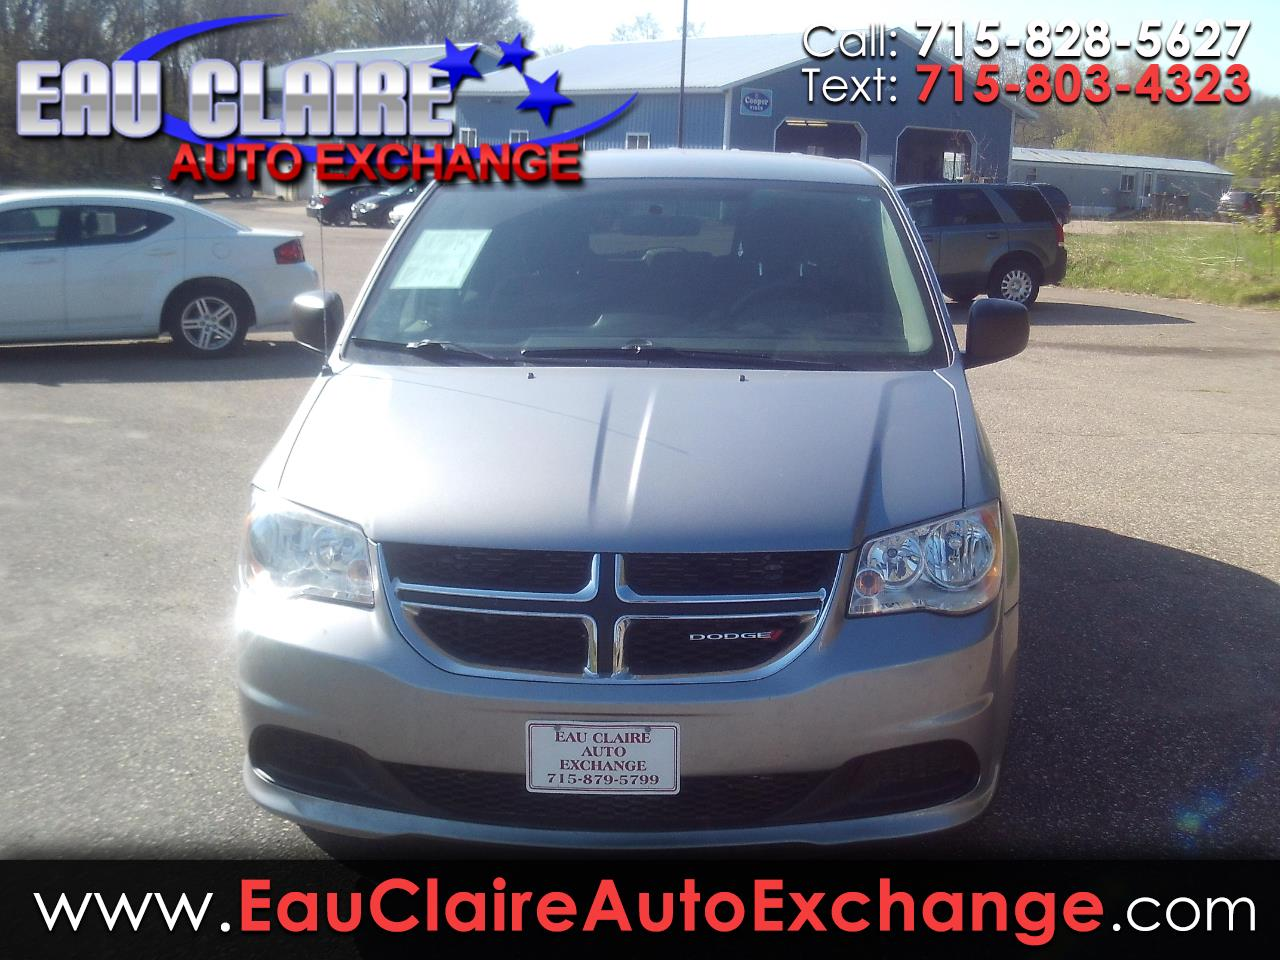 2014 Dodge Grand Caravan 4dr Wgn SE